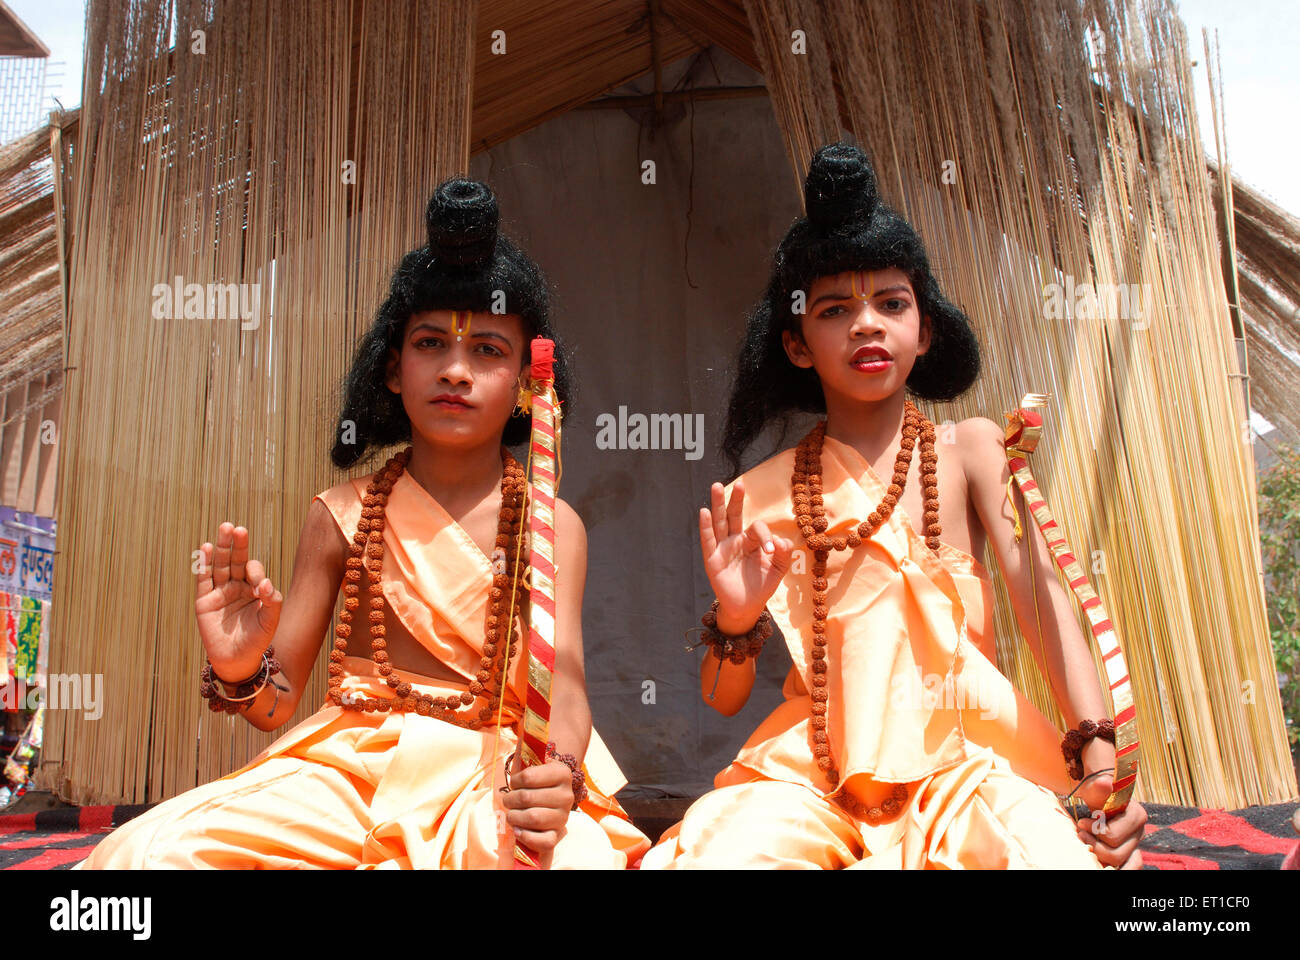 Two young boys as Lav Kush in procession of Ramnavmi ; Jodhpur ; Rajasthan ; India NO MR - Stock Image